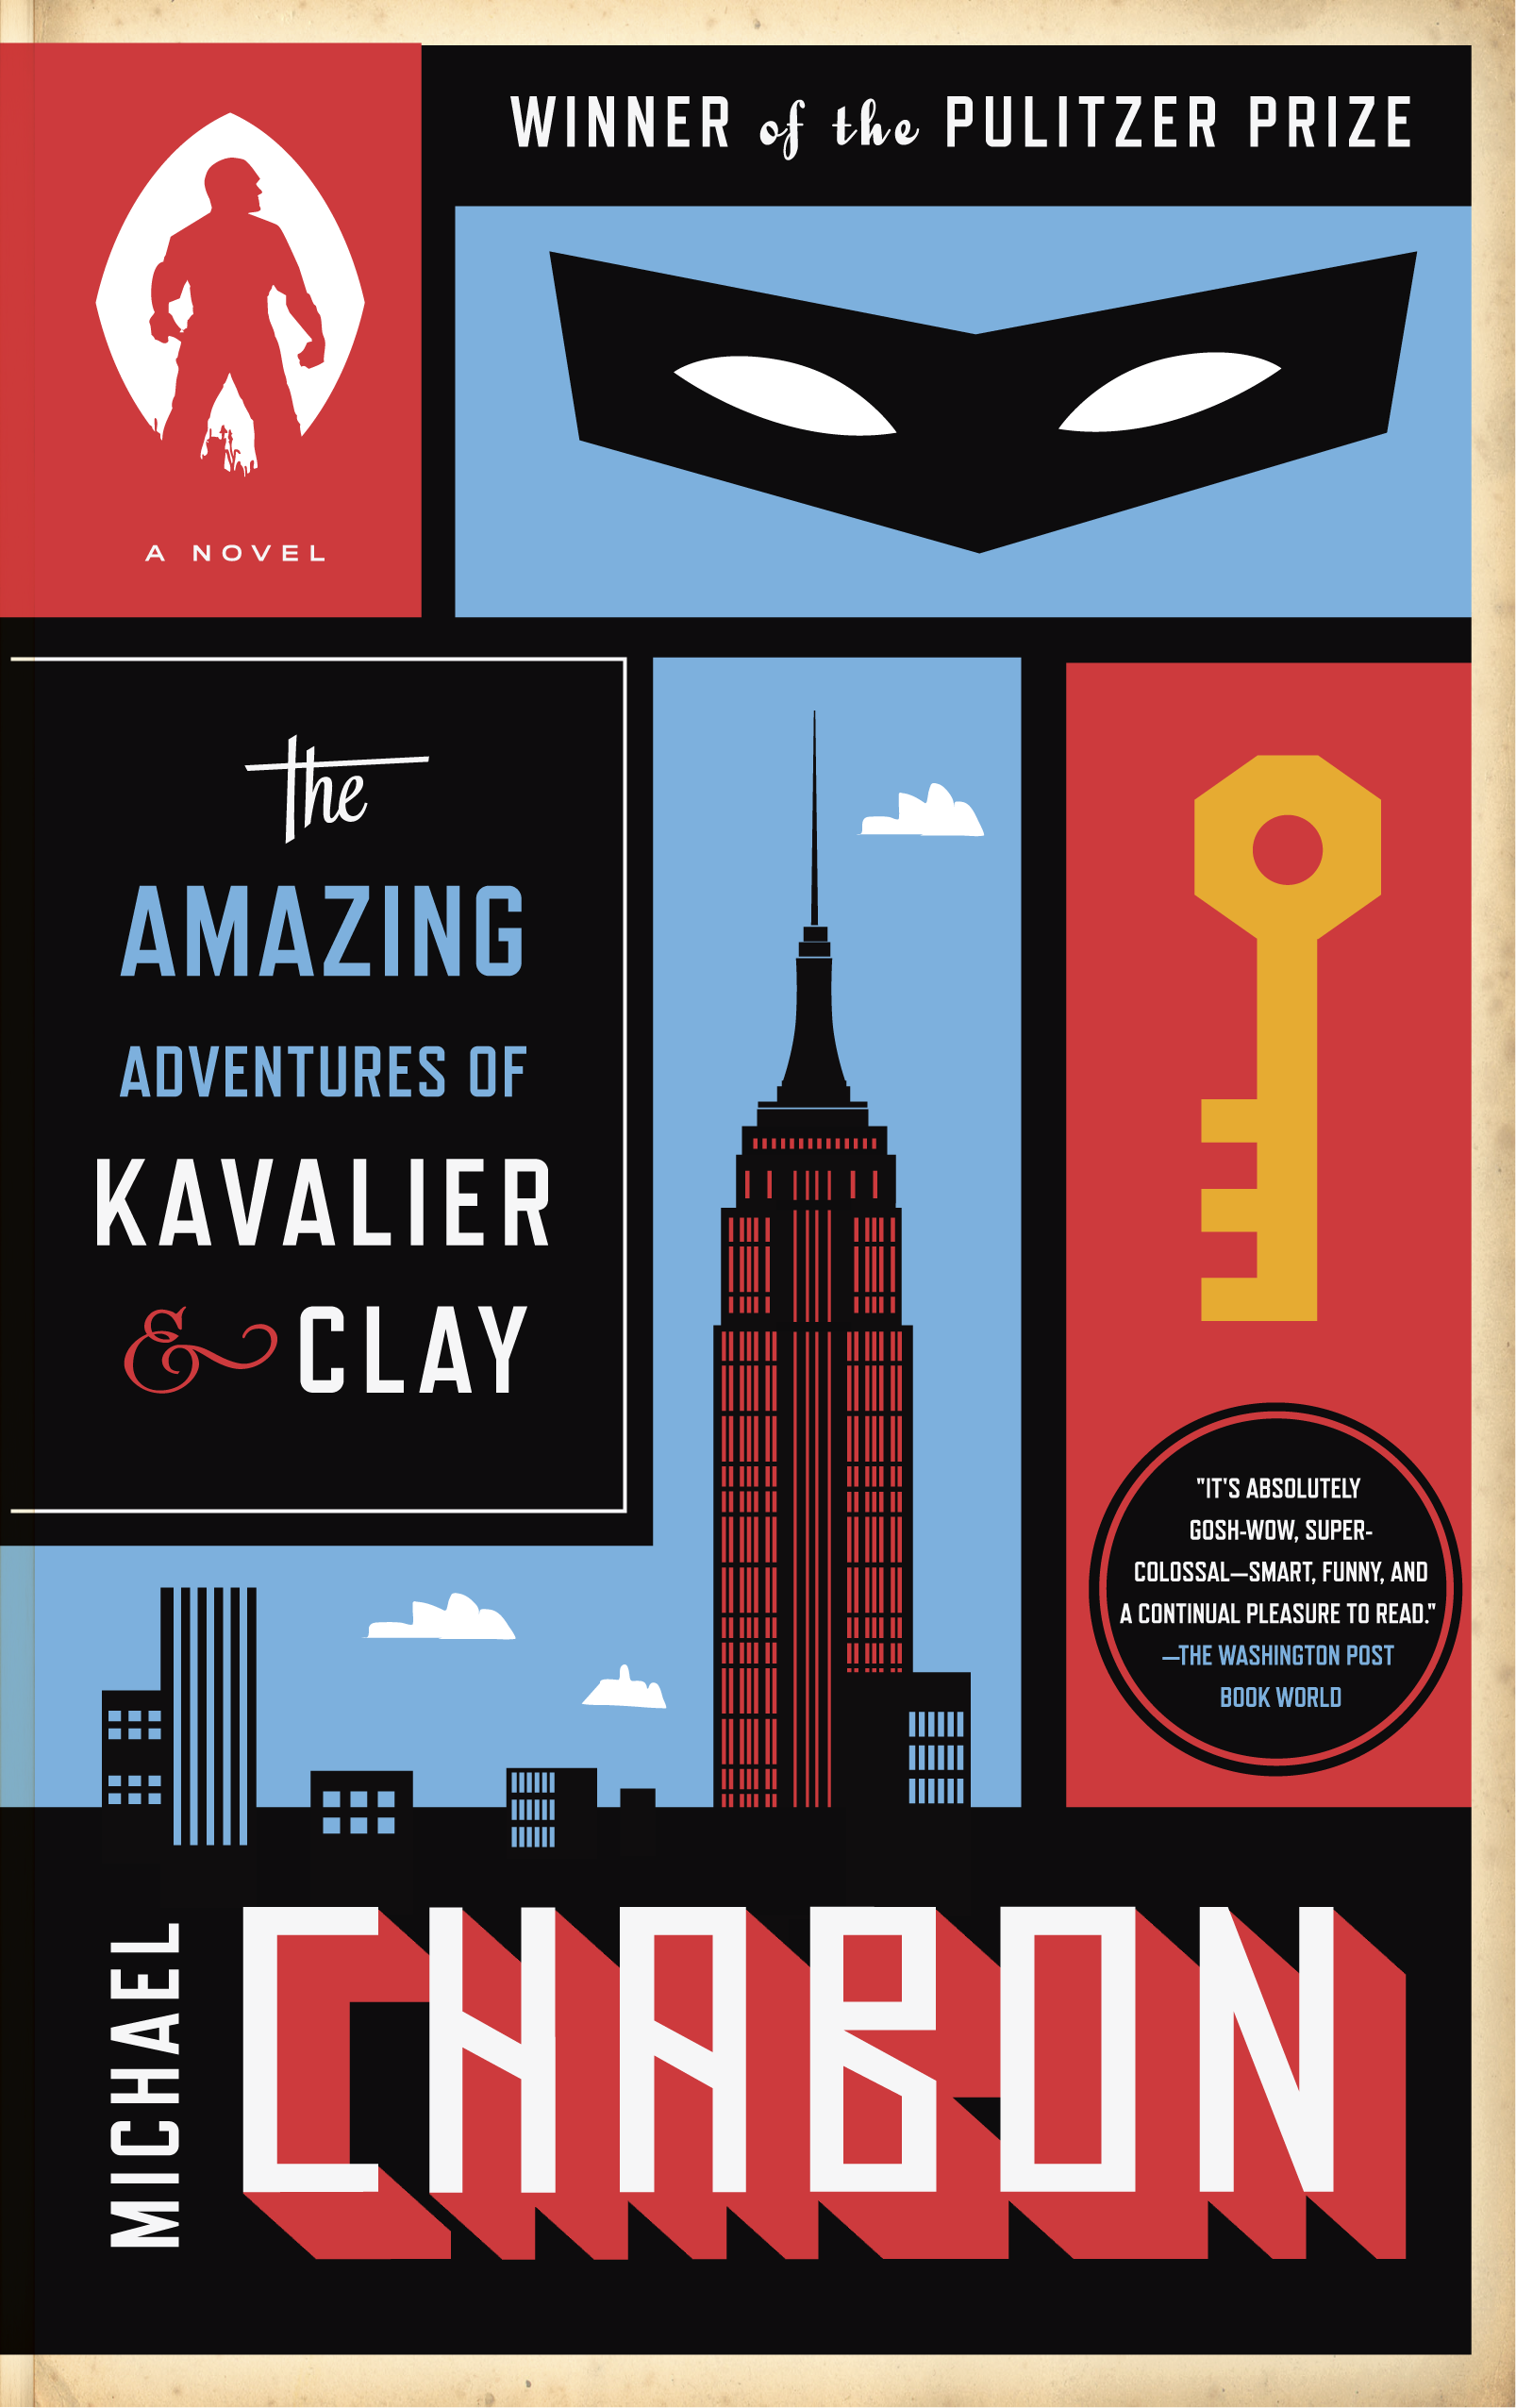 kavalier and clay Written by michael chabon, narrated by david colacci download the app and start listening to the amazing adventures of kavalier & clay today - free with a.